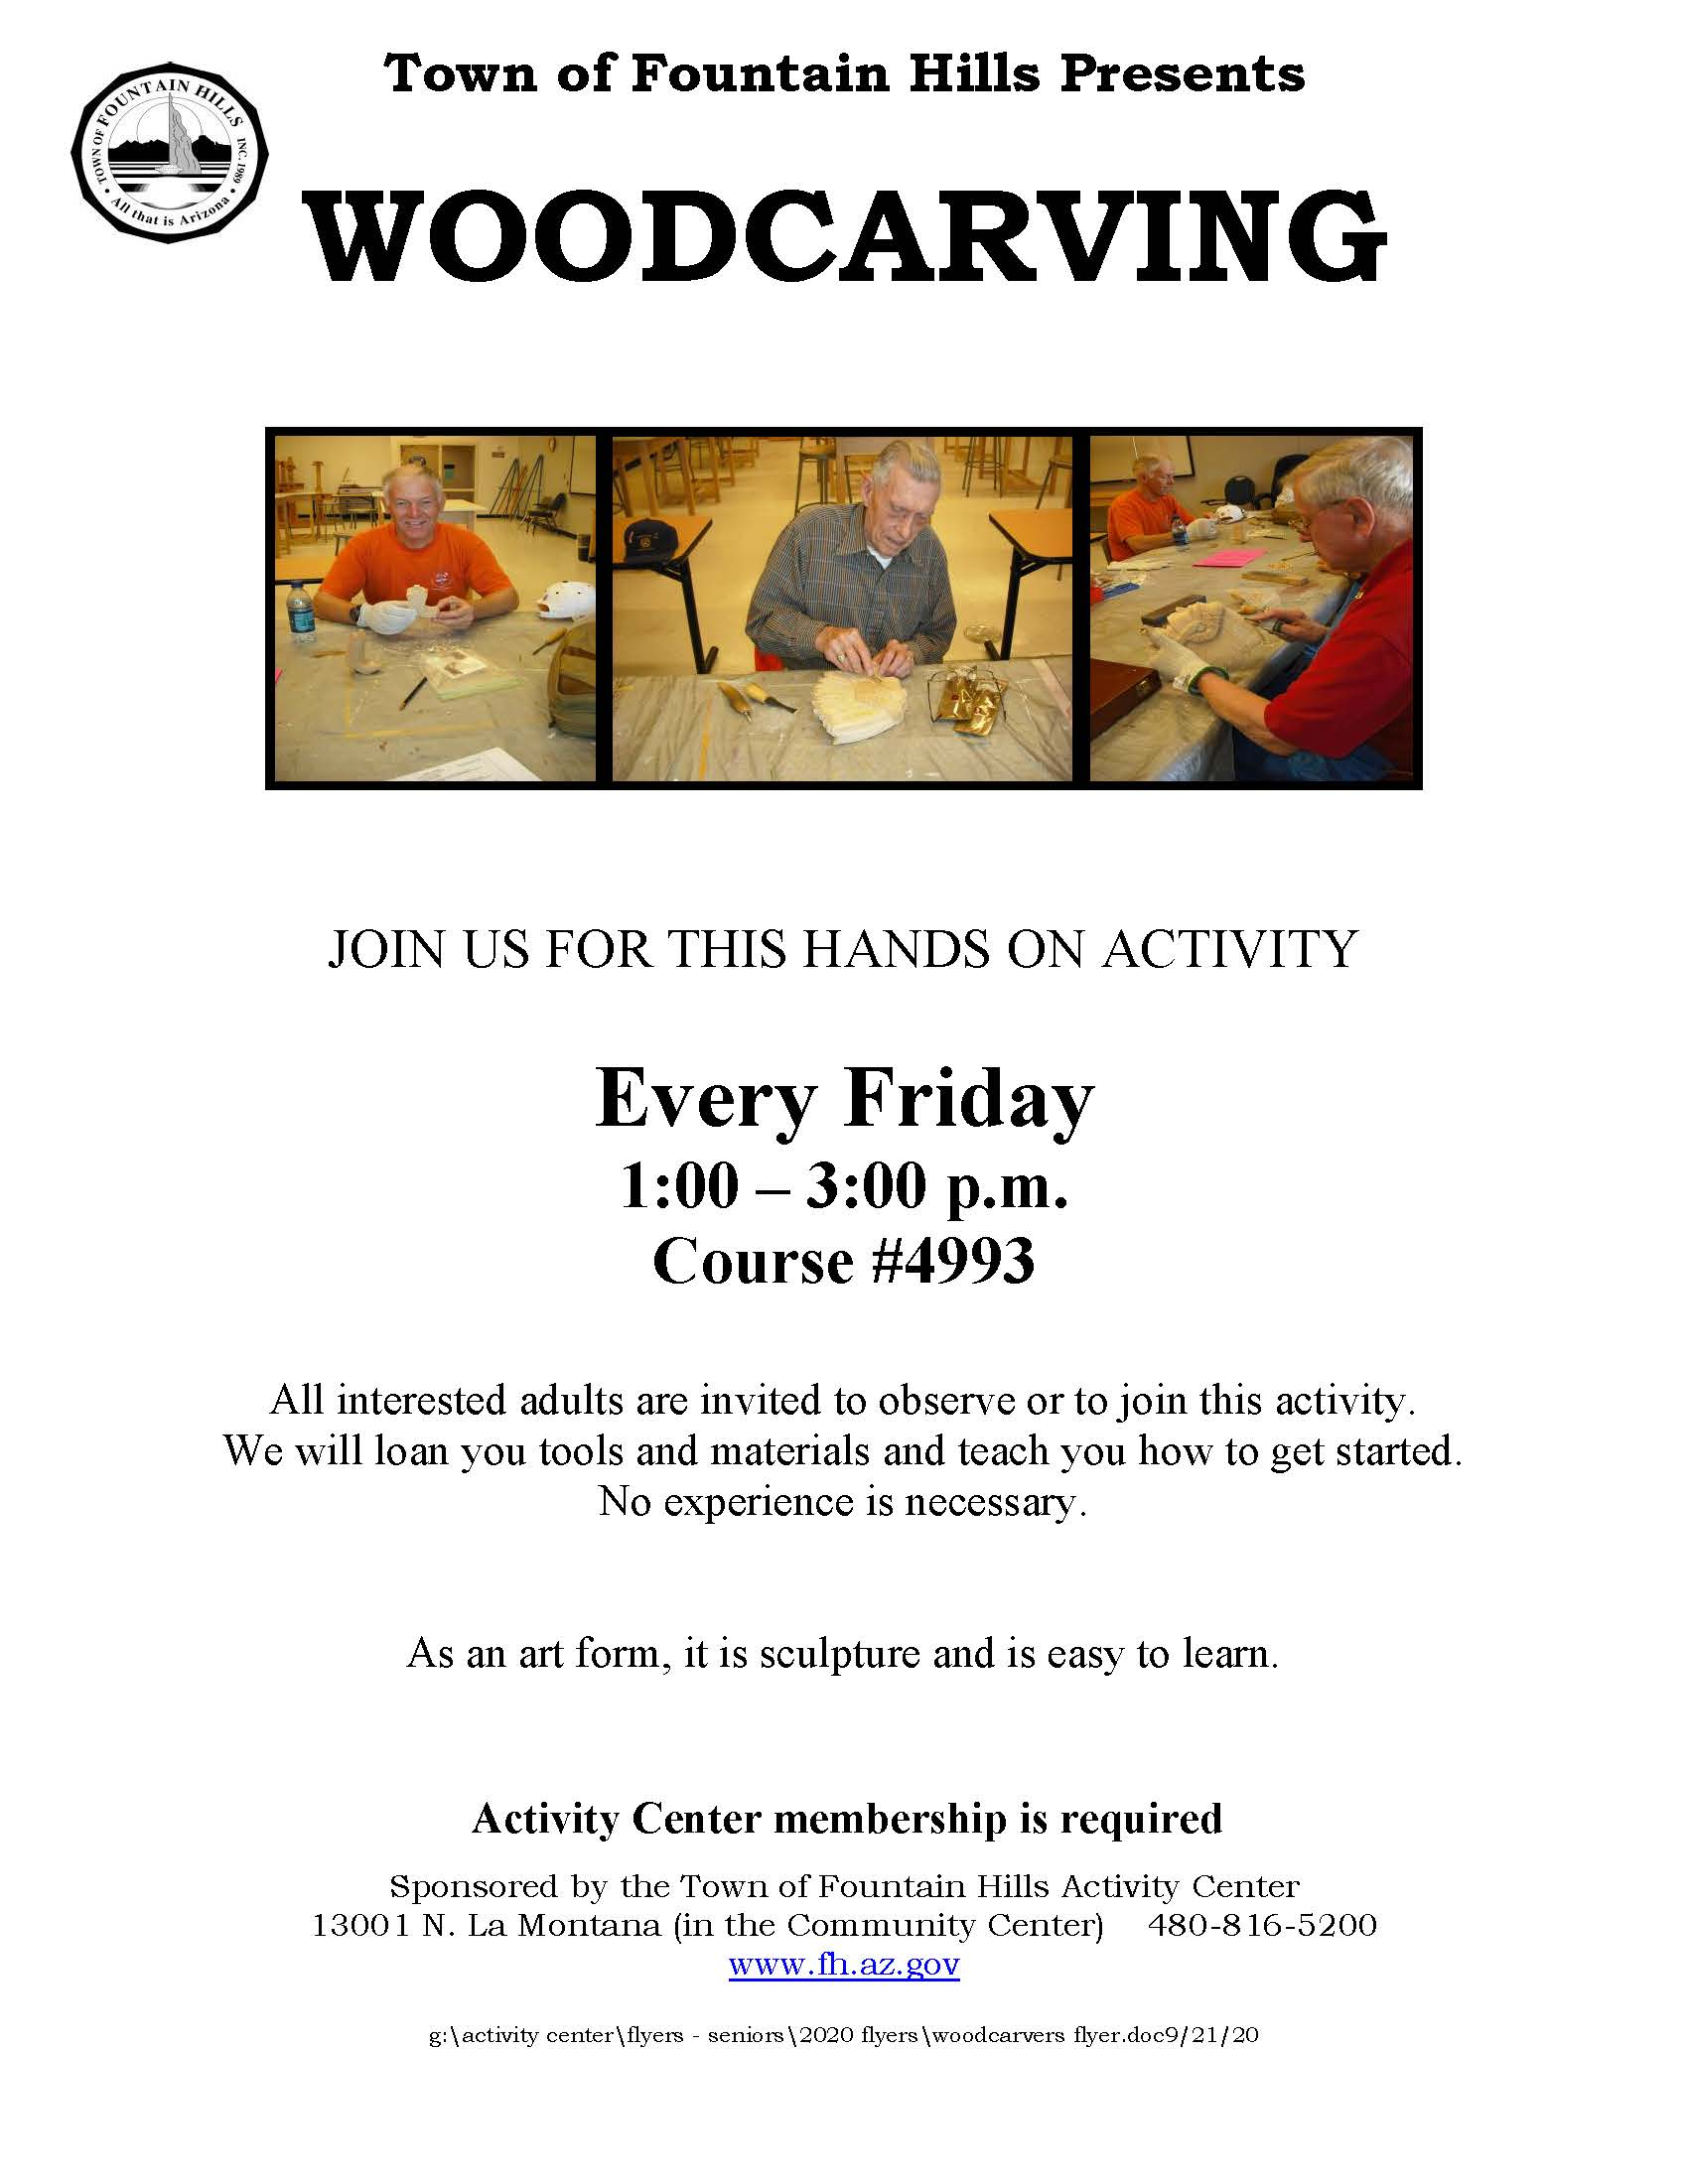 Woodcarvers flyer